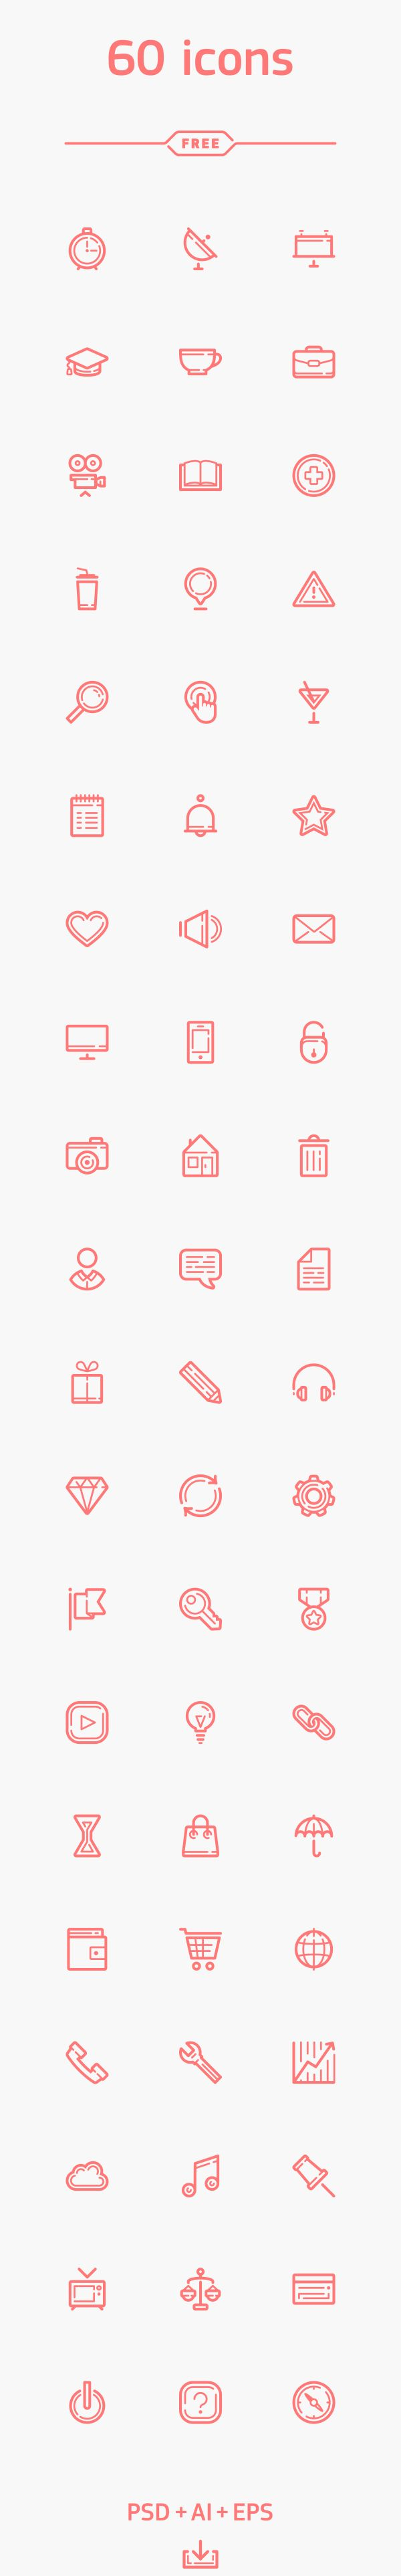 Free Icons for Web and User Interface Design # 65